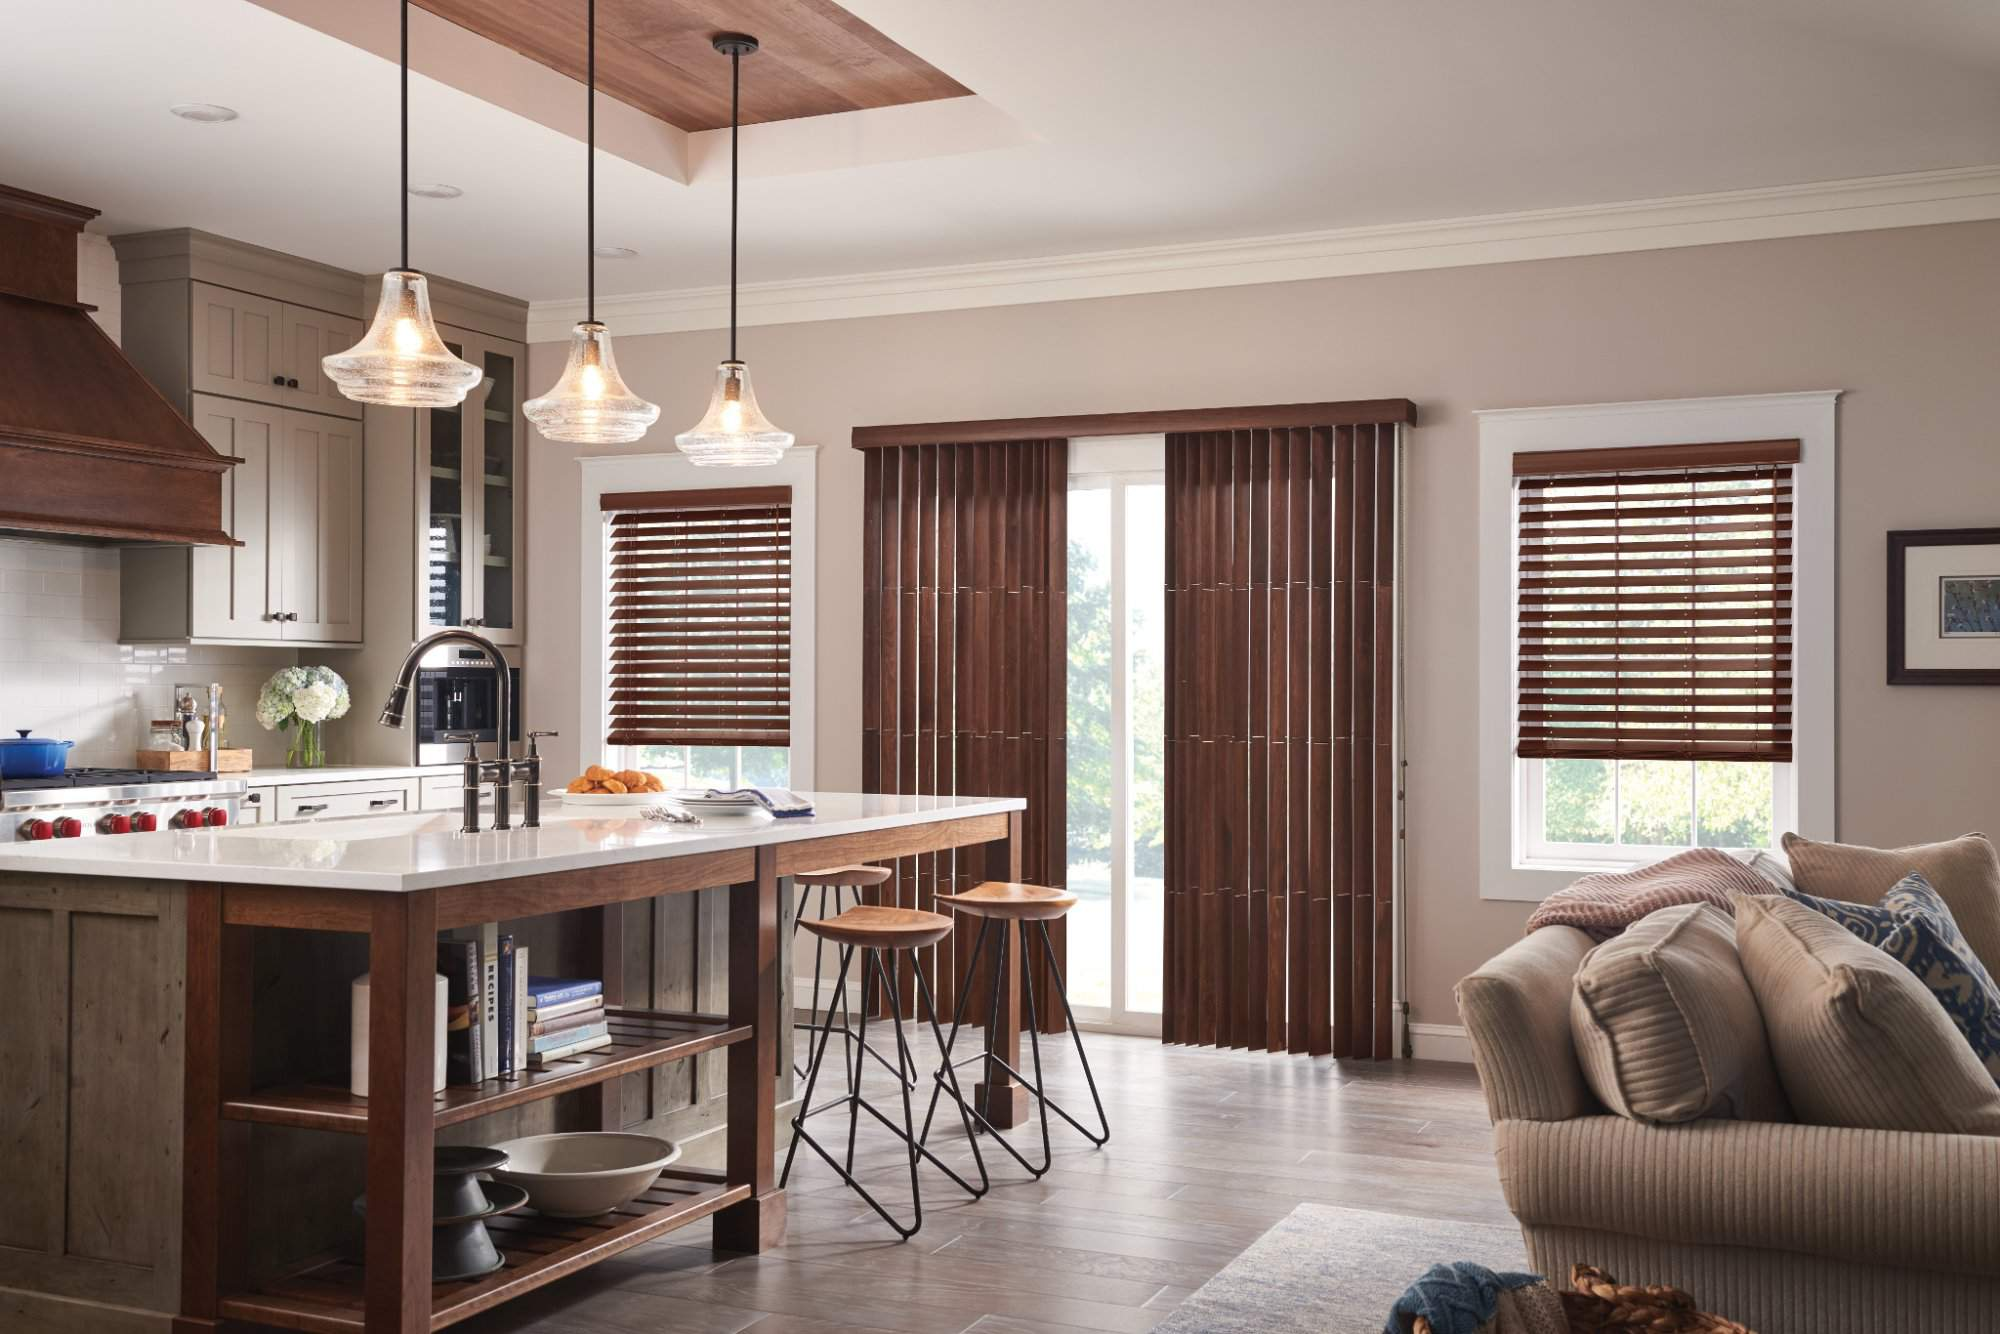 Wood Vertical Blinds with Cord and Chain